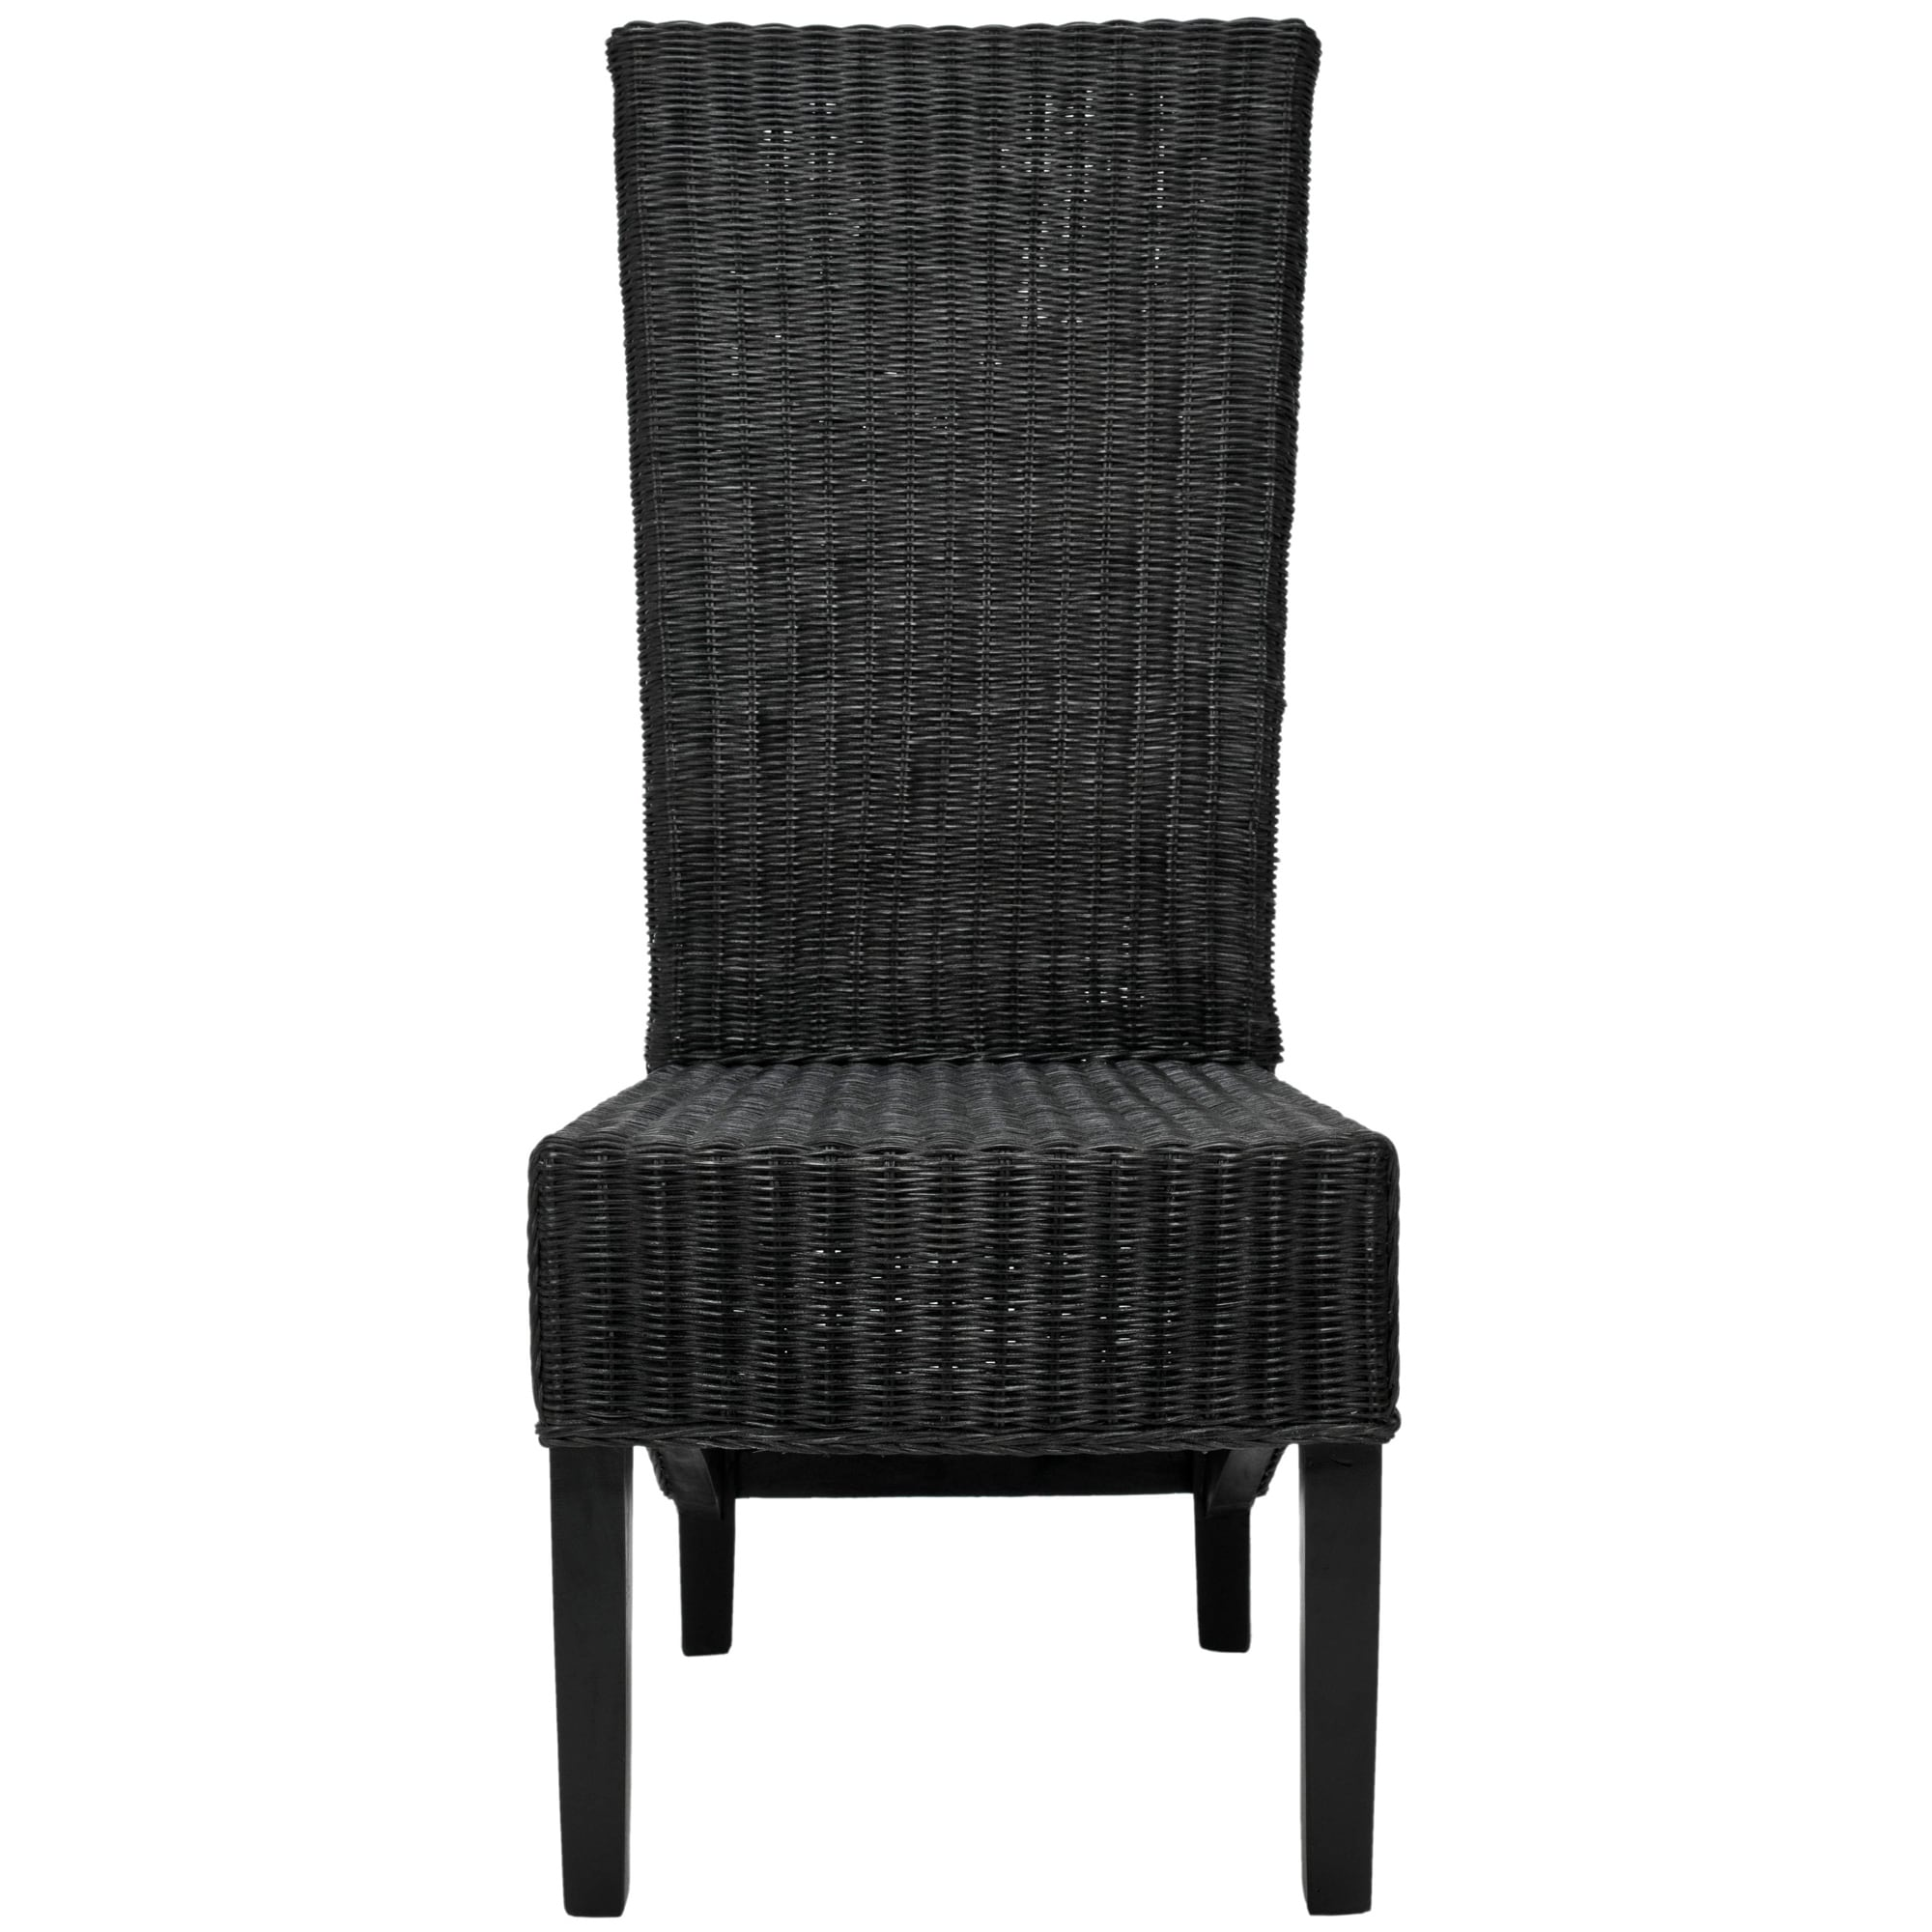 Delicieux Shop Safavieh Dining Rural Woven St. Croix Wicker Black High Back Dining  Chairs (Set Of 2)   On Sale   Free Shipping Today   Overstock   5998342